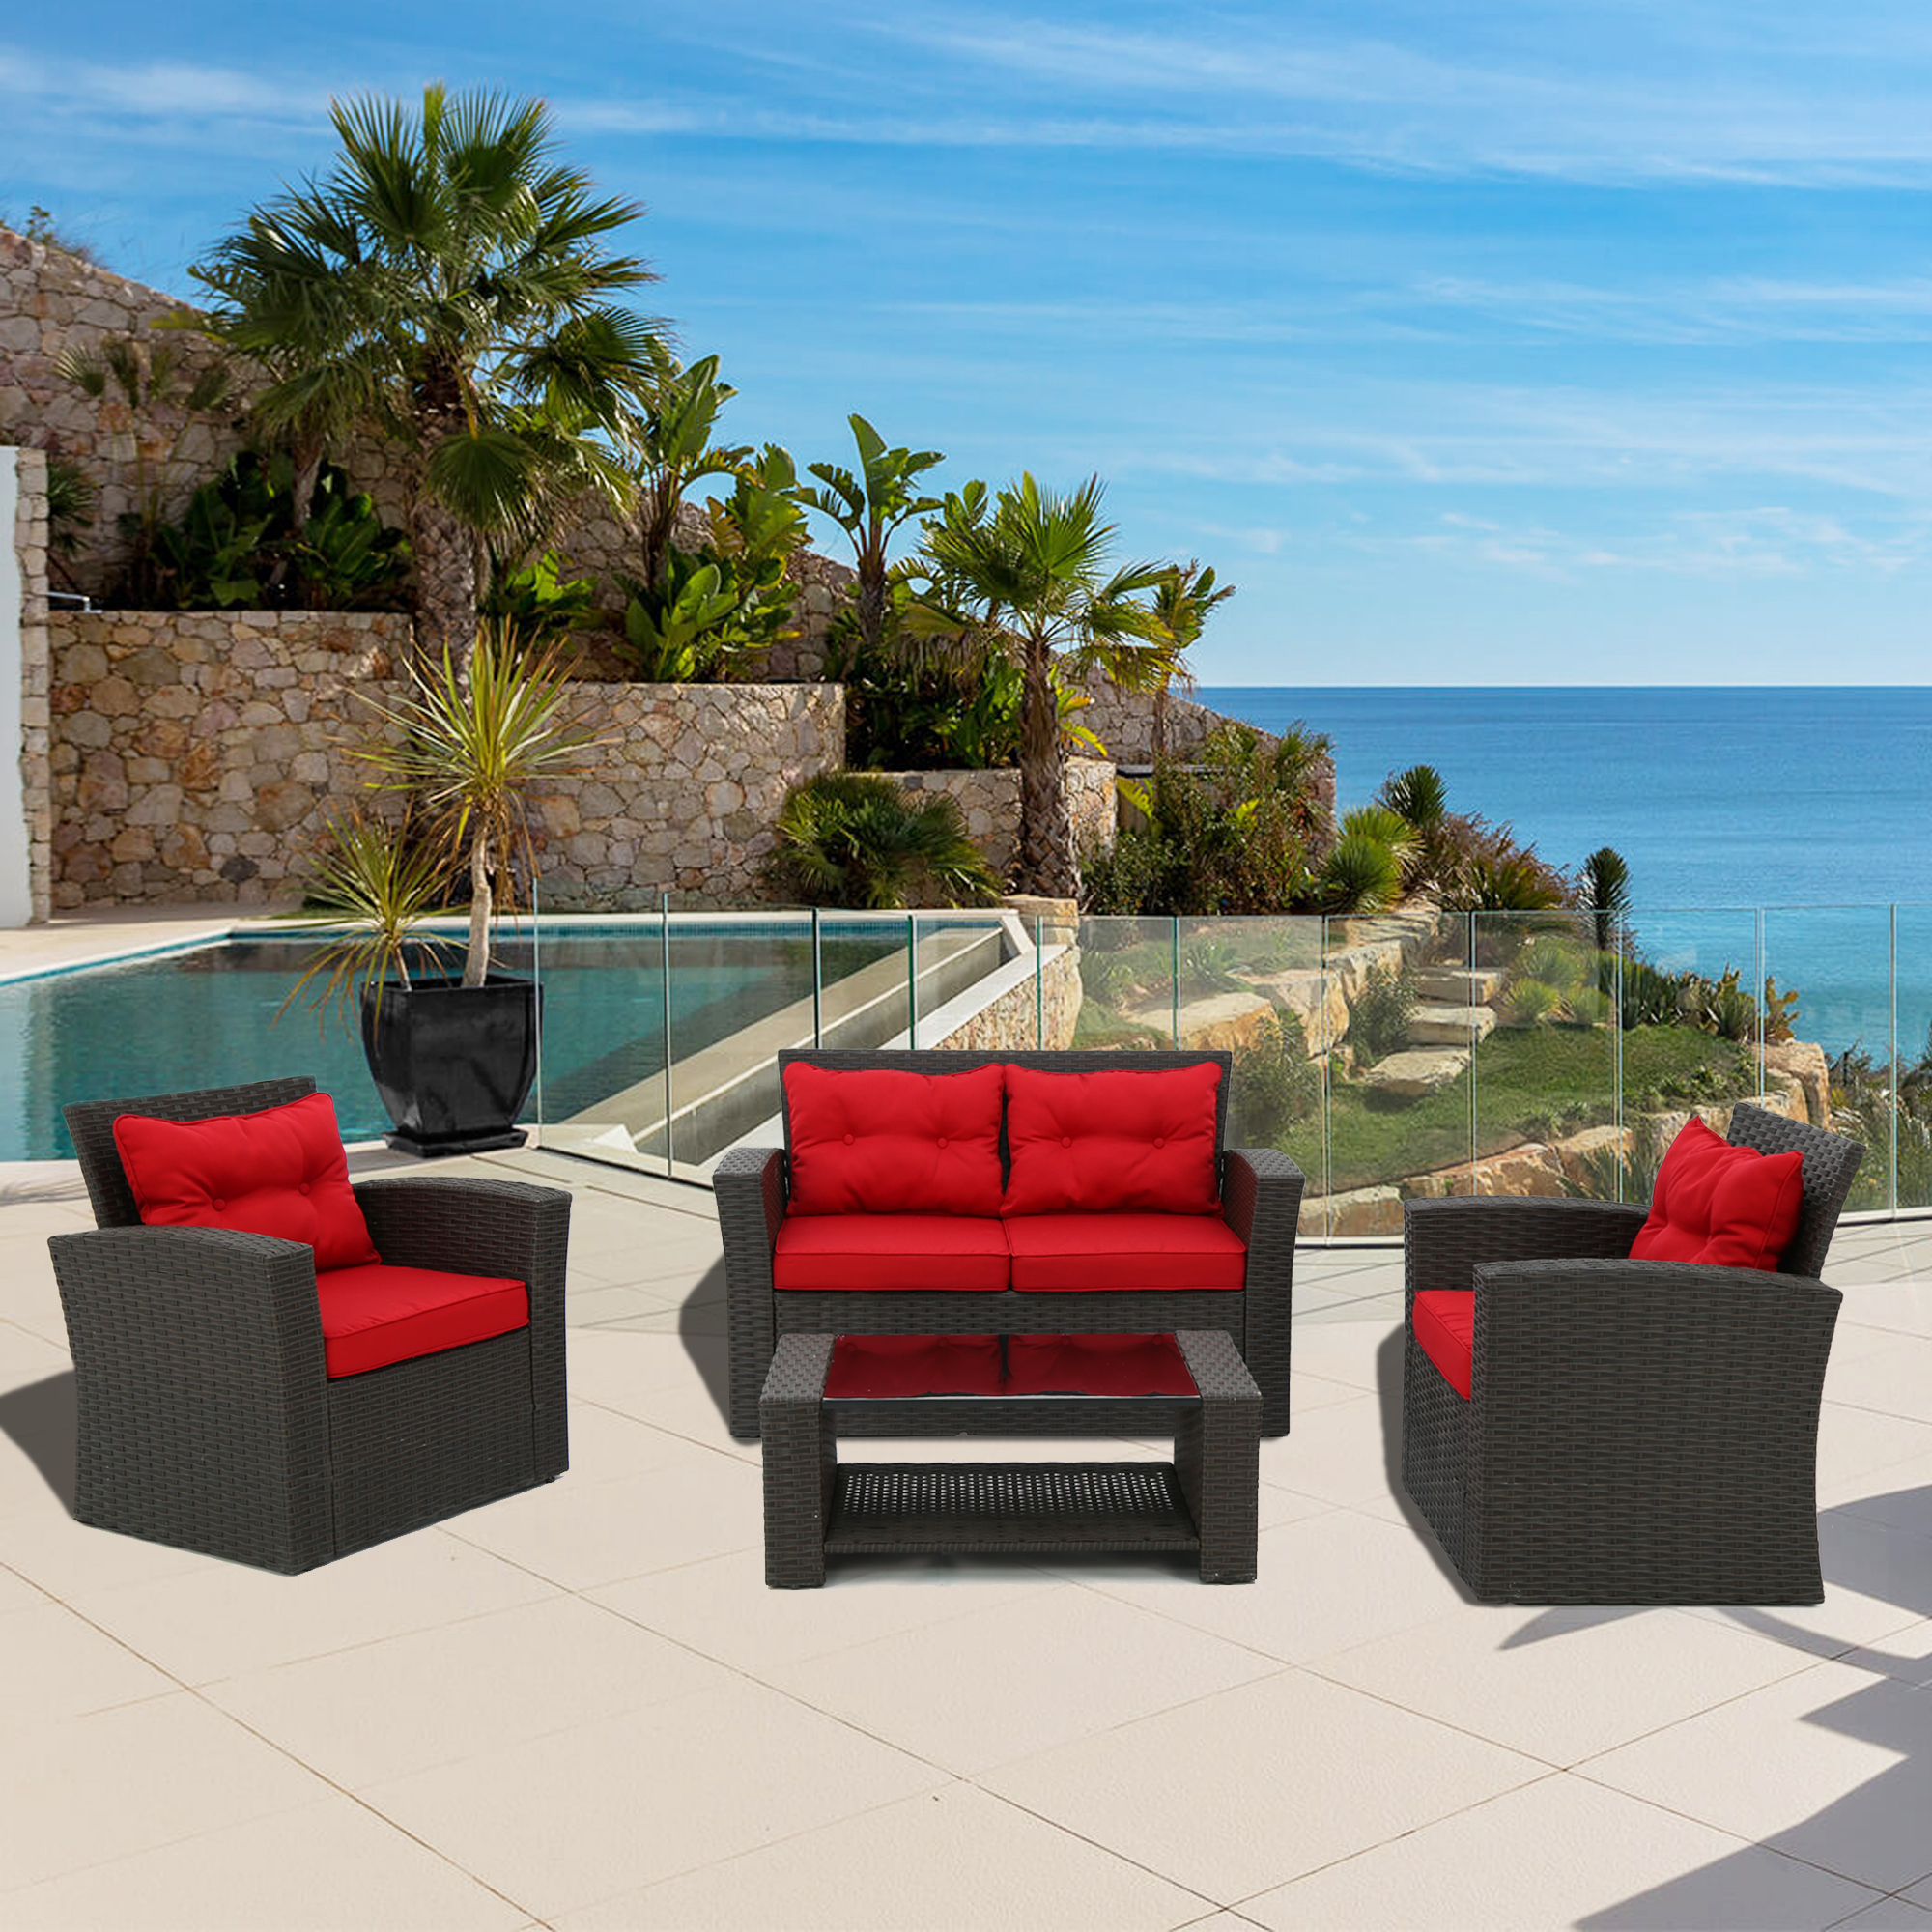 Baner Garden N87-BL-CST-R 4 Piece Outdoor Furniture Set All Weather Deep Seating Patio Chair Seat and Back Cushion Set with Black Rattan and Red Cushions